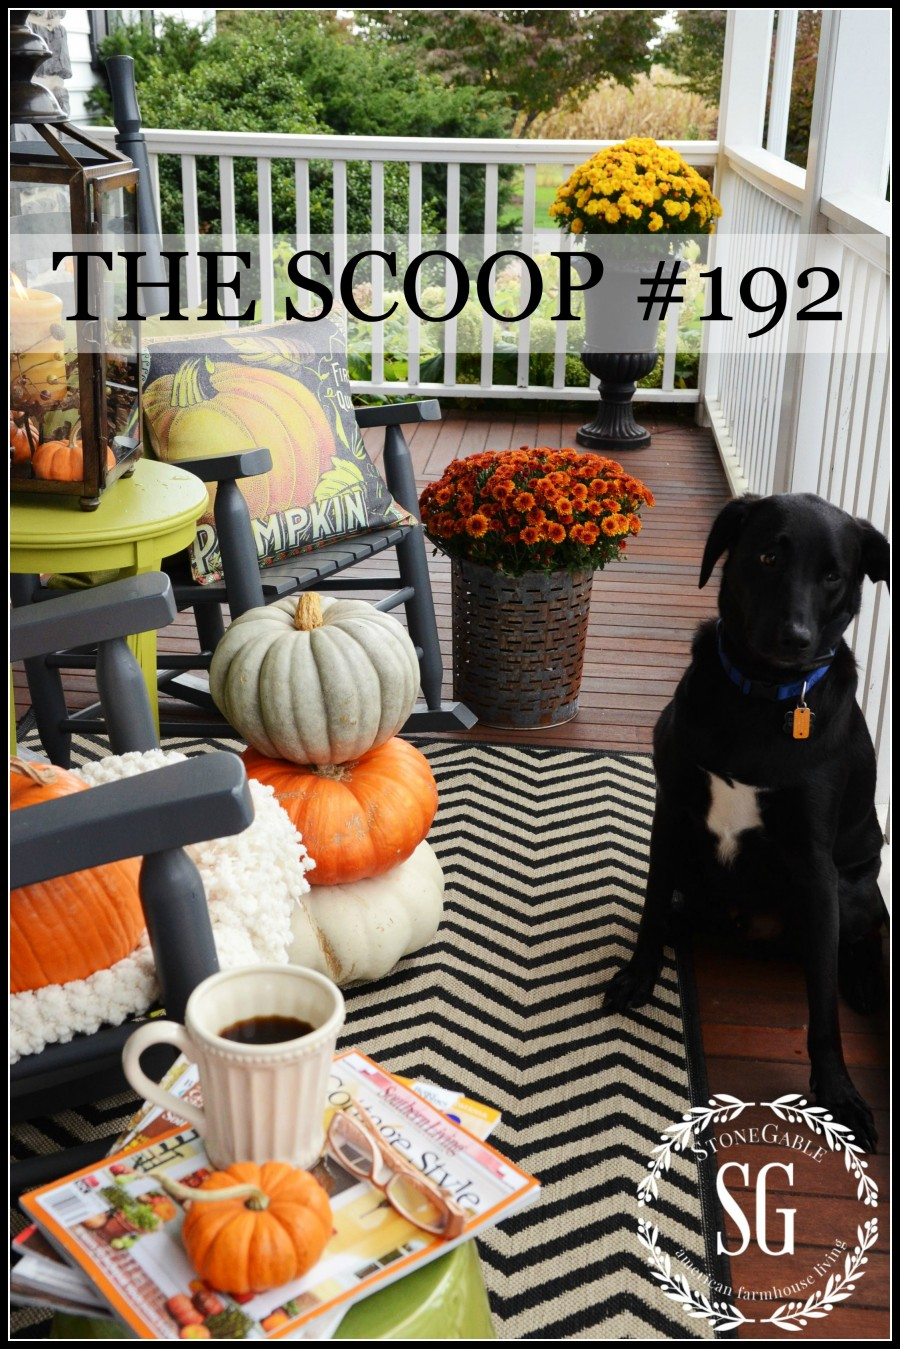 THE SCOOP #192- Hundreds of creative ideas from all over the web. Lots of fall ideas too